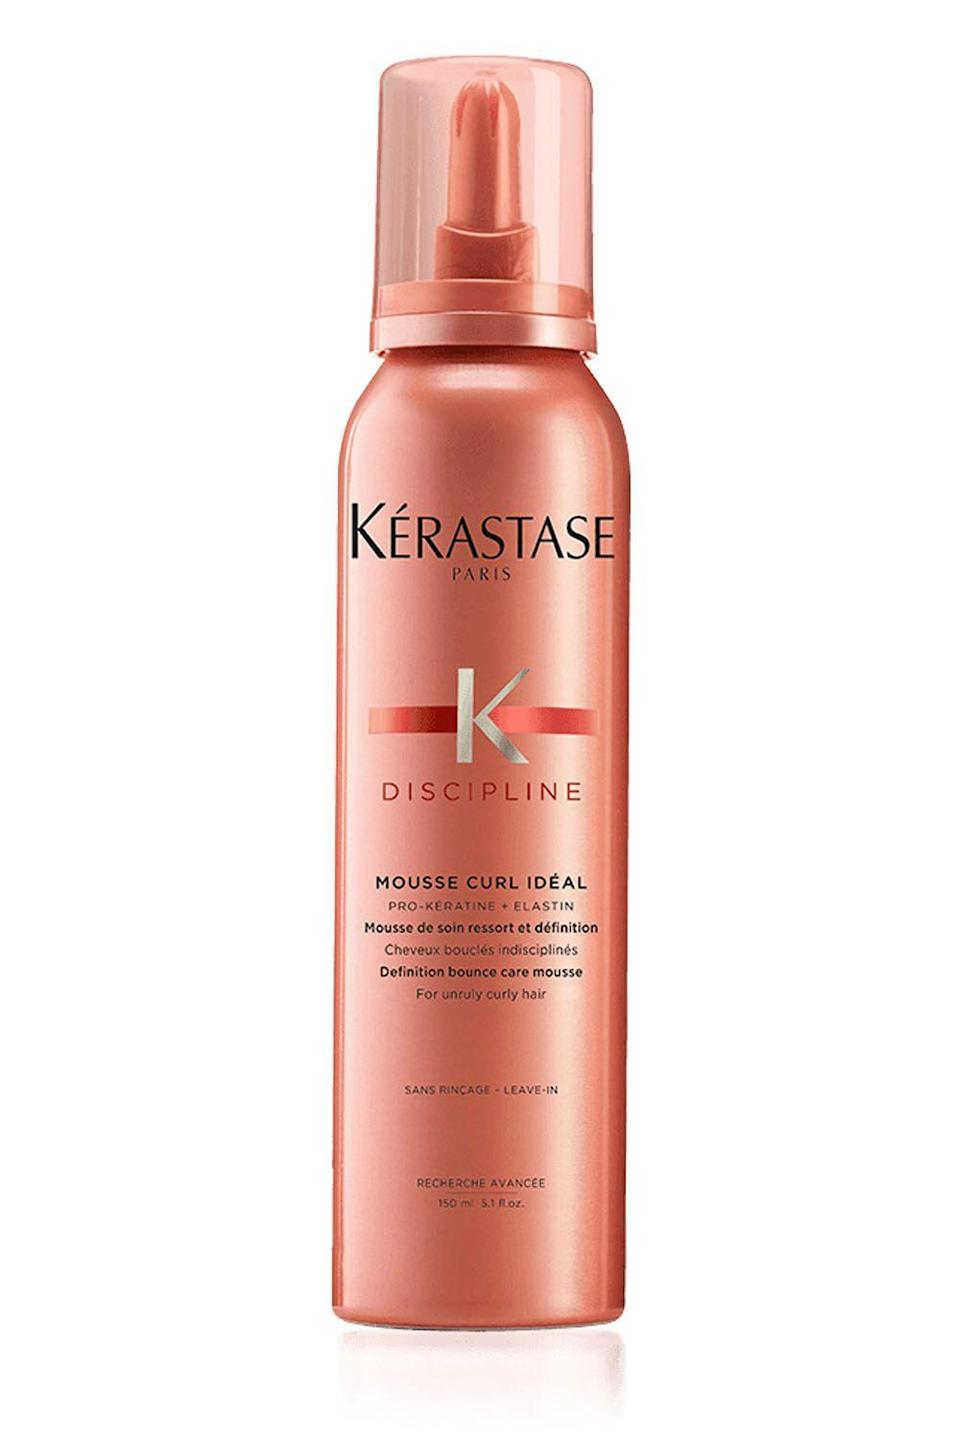 """<p><strong>Kérastase</strong></p><p>sephora.com</p><p><strong>$37.00</strong></p><p><a href=""""https://www.sephora.com/product/discipline-mousse-for-curly-hair-P434421"""" rel=""""nofollow noopener"""" target=""""_blank"""" data-ylk=""""slk:Shop Now"""" class=""""link rapid-noclick-resp"""">Shop Now</a></p><p>Those tiny, wispy hairs that just. won't. lie. down. can be annoying as hell to deal with. Your savior? This mousse, which contains a pro-keratin complex that <strong>helps smooth the surface of your hair to stave off flyaways and <a href=""""https://www.cosmopolitan.com/style-beauty/beauty/a33187/how-to-defrizz-your-hair/"""" rel=""""nofollow noopener"""" target=""""_blank"""" data-ylk=""""slk:frizz"""" class=""""link rapid-noclick-resp"""">frizz</a> </strong>during the day.</p>"""